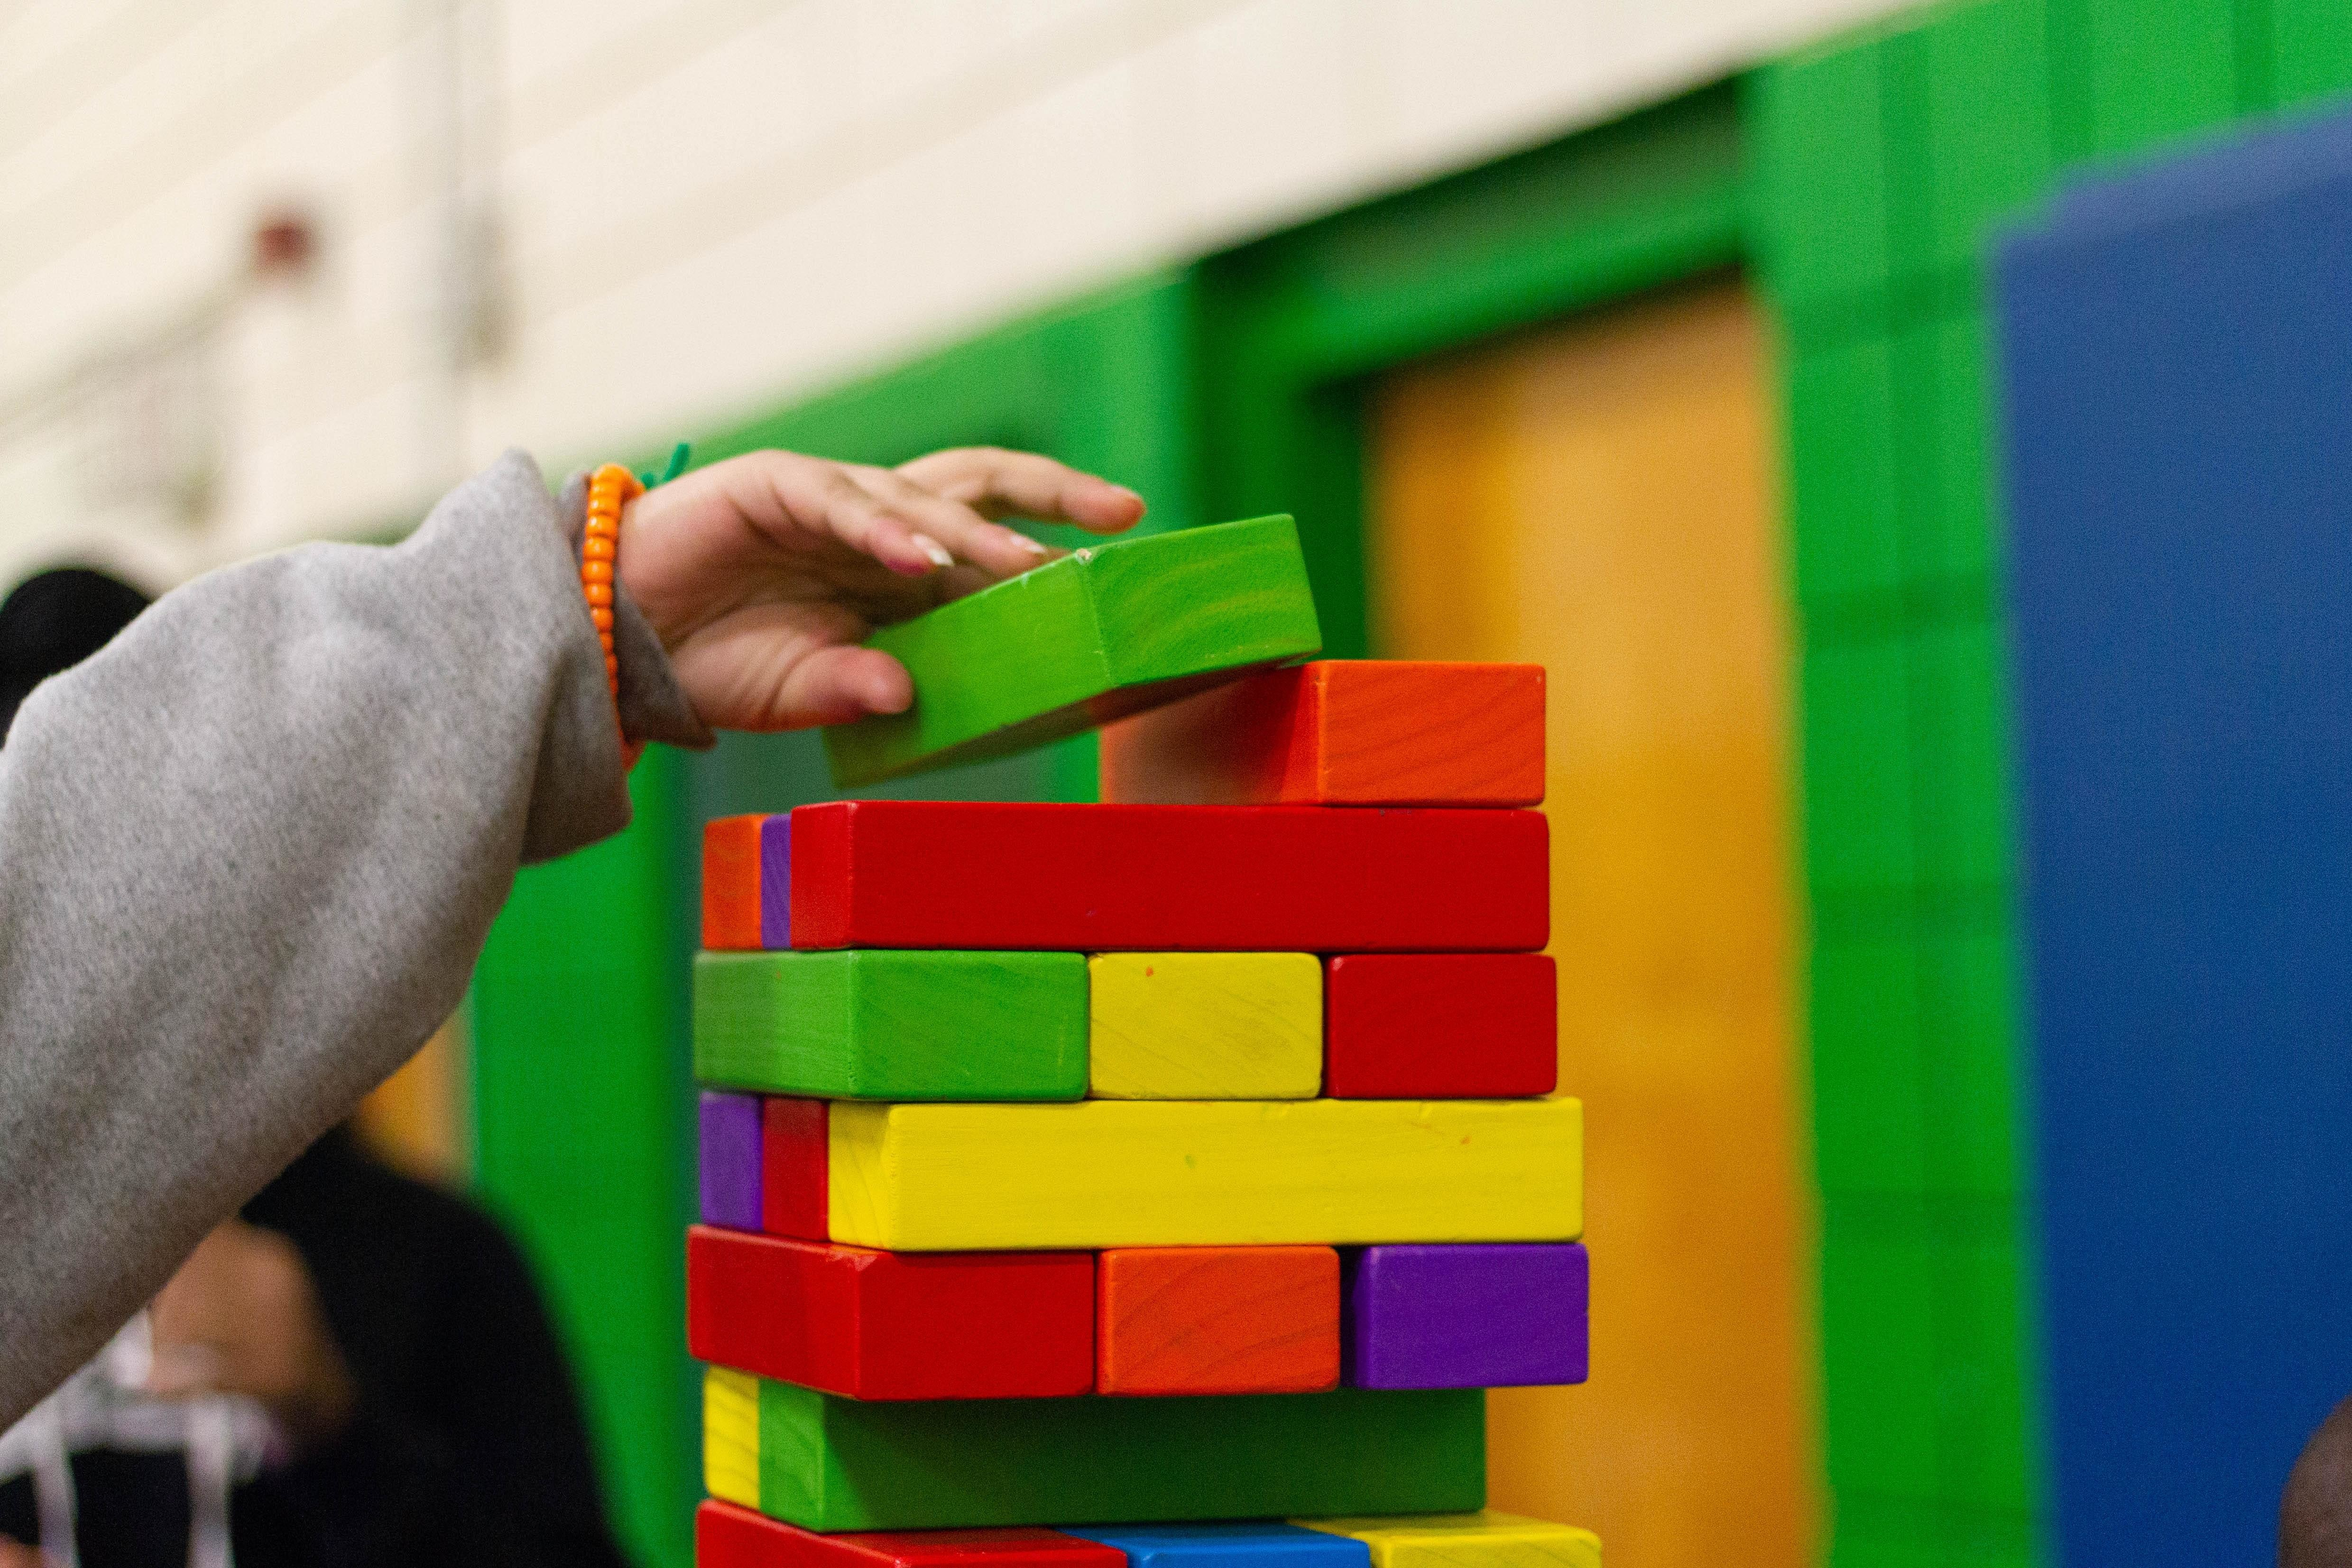 shown here is a child playing with building blocks. Researchers have been studying how children playing in educational, public spaces can help their development i